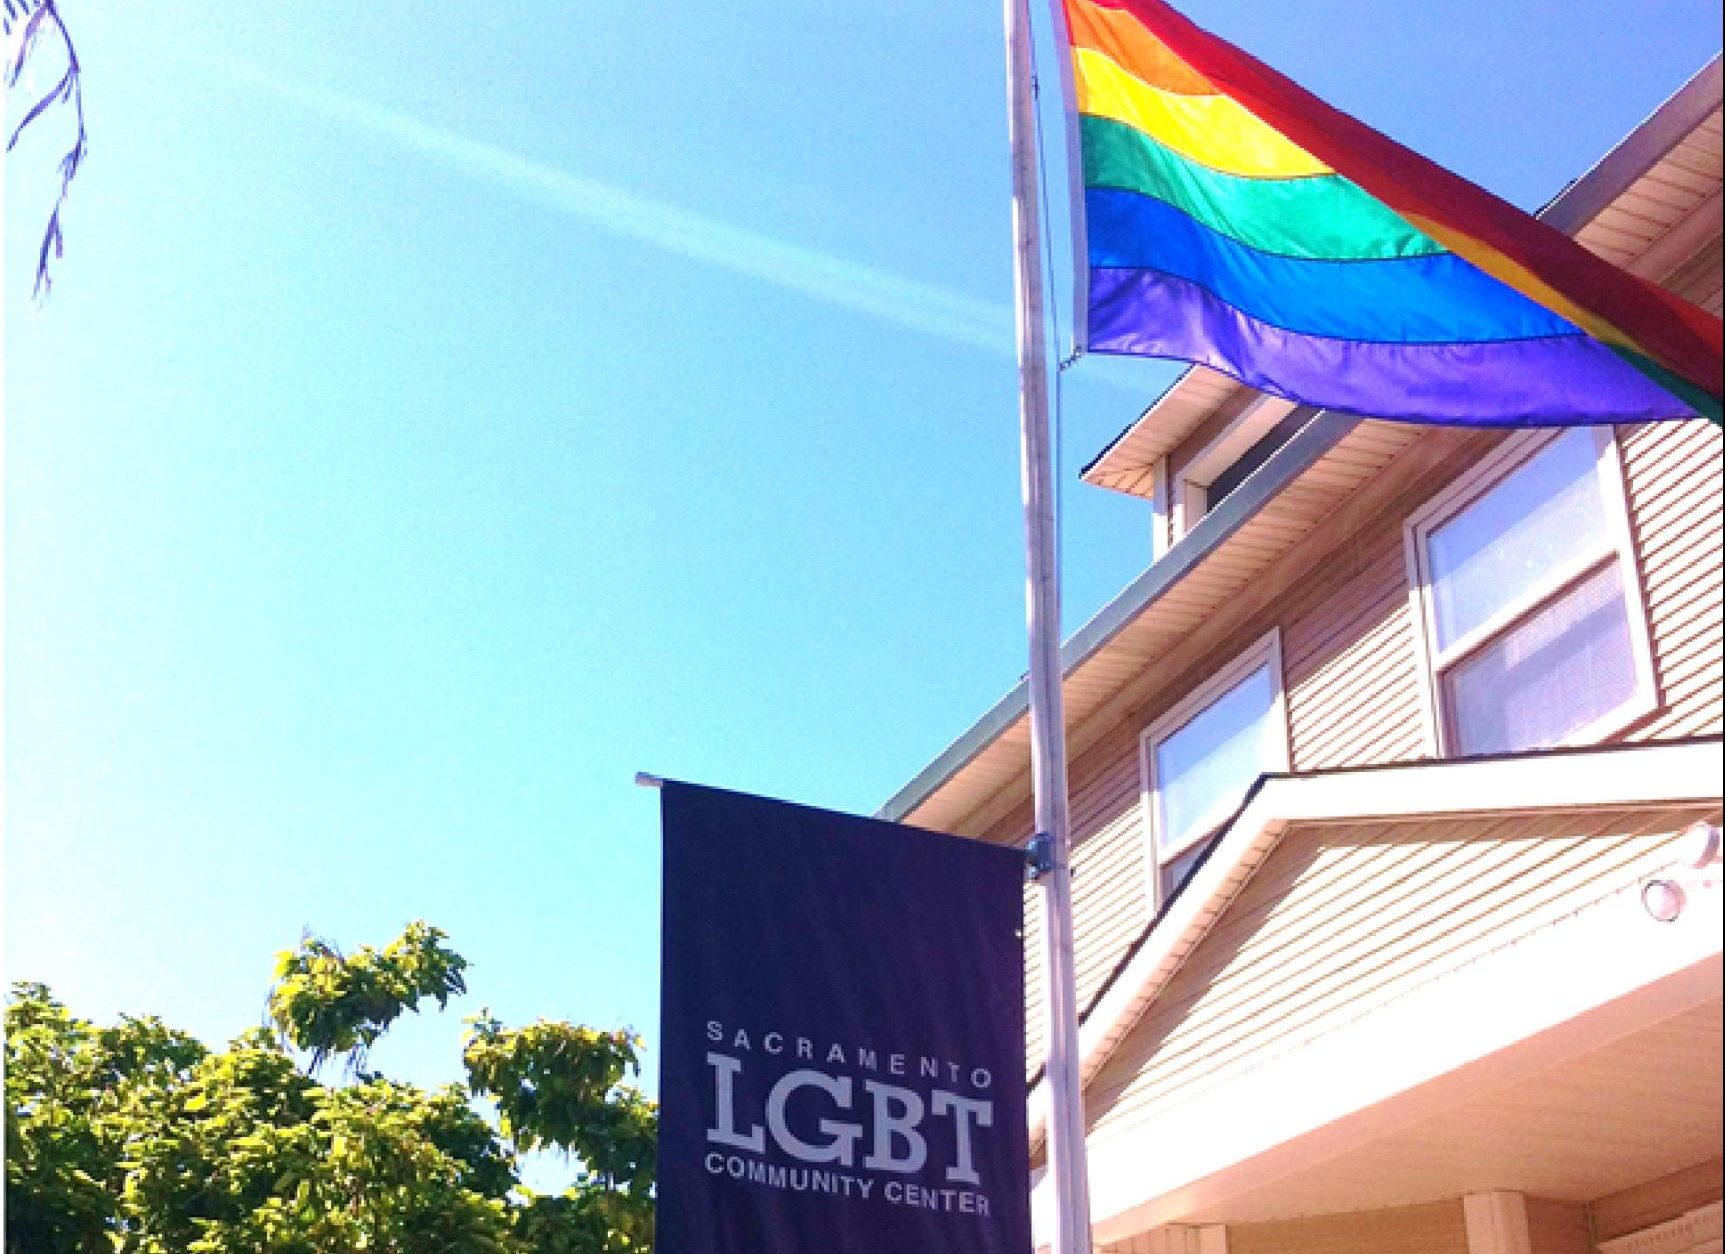 LGBT sign and rainbow flag in front of a building.